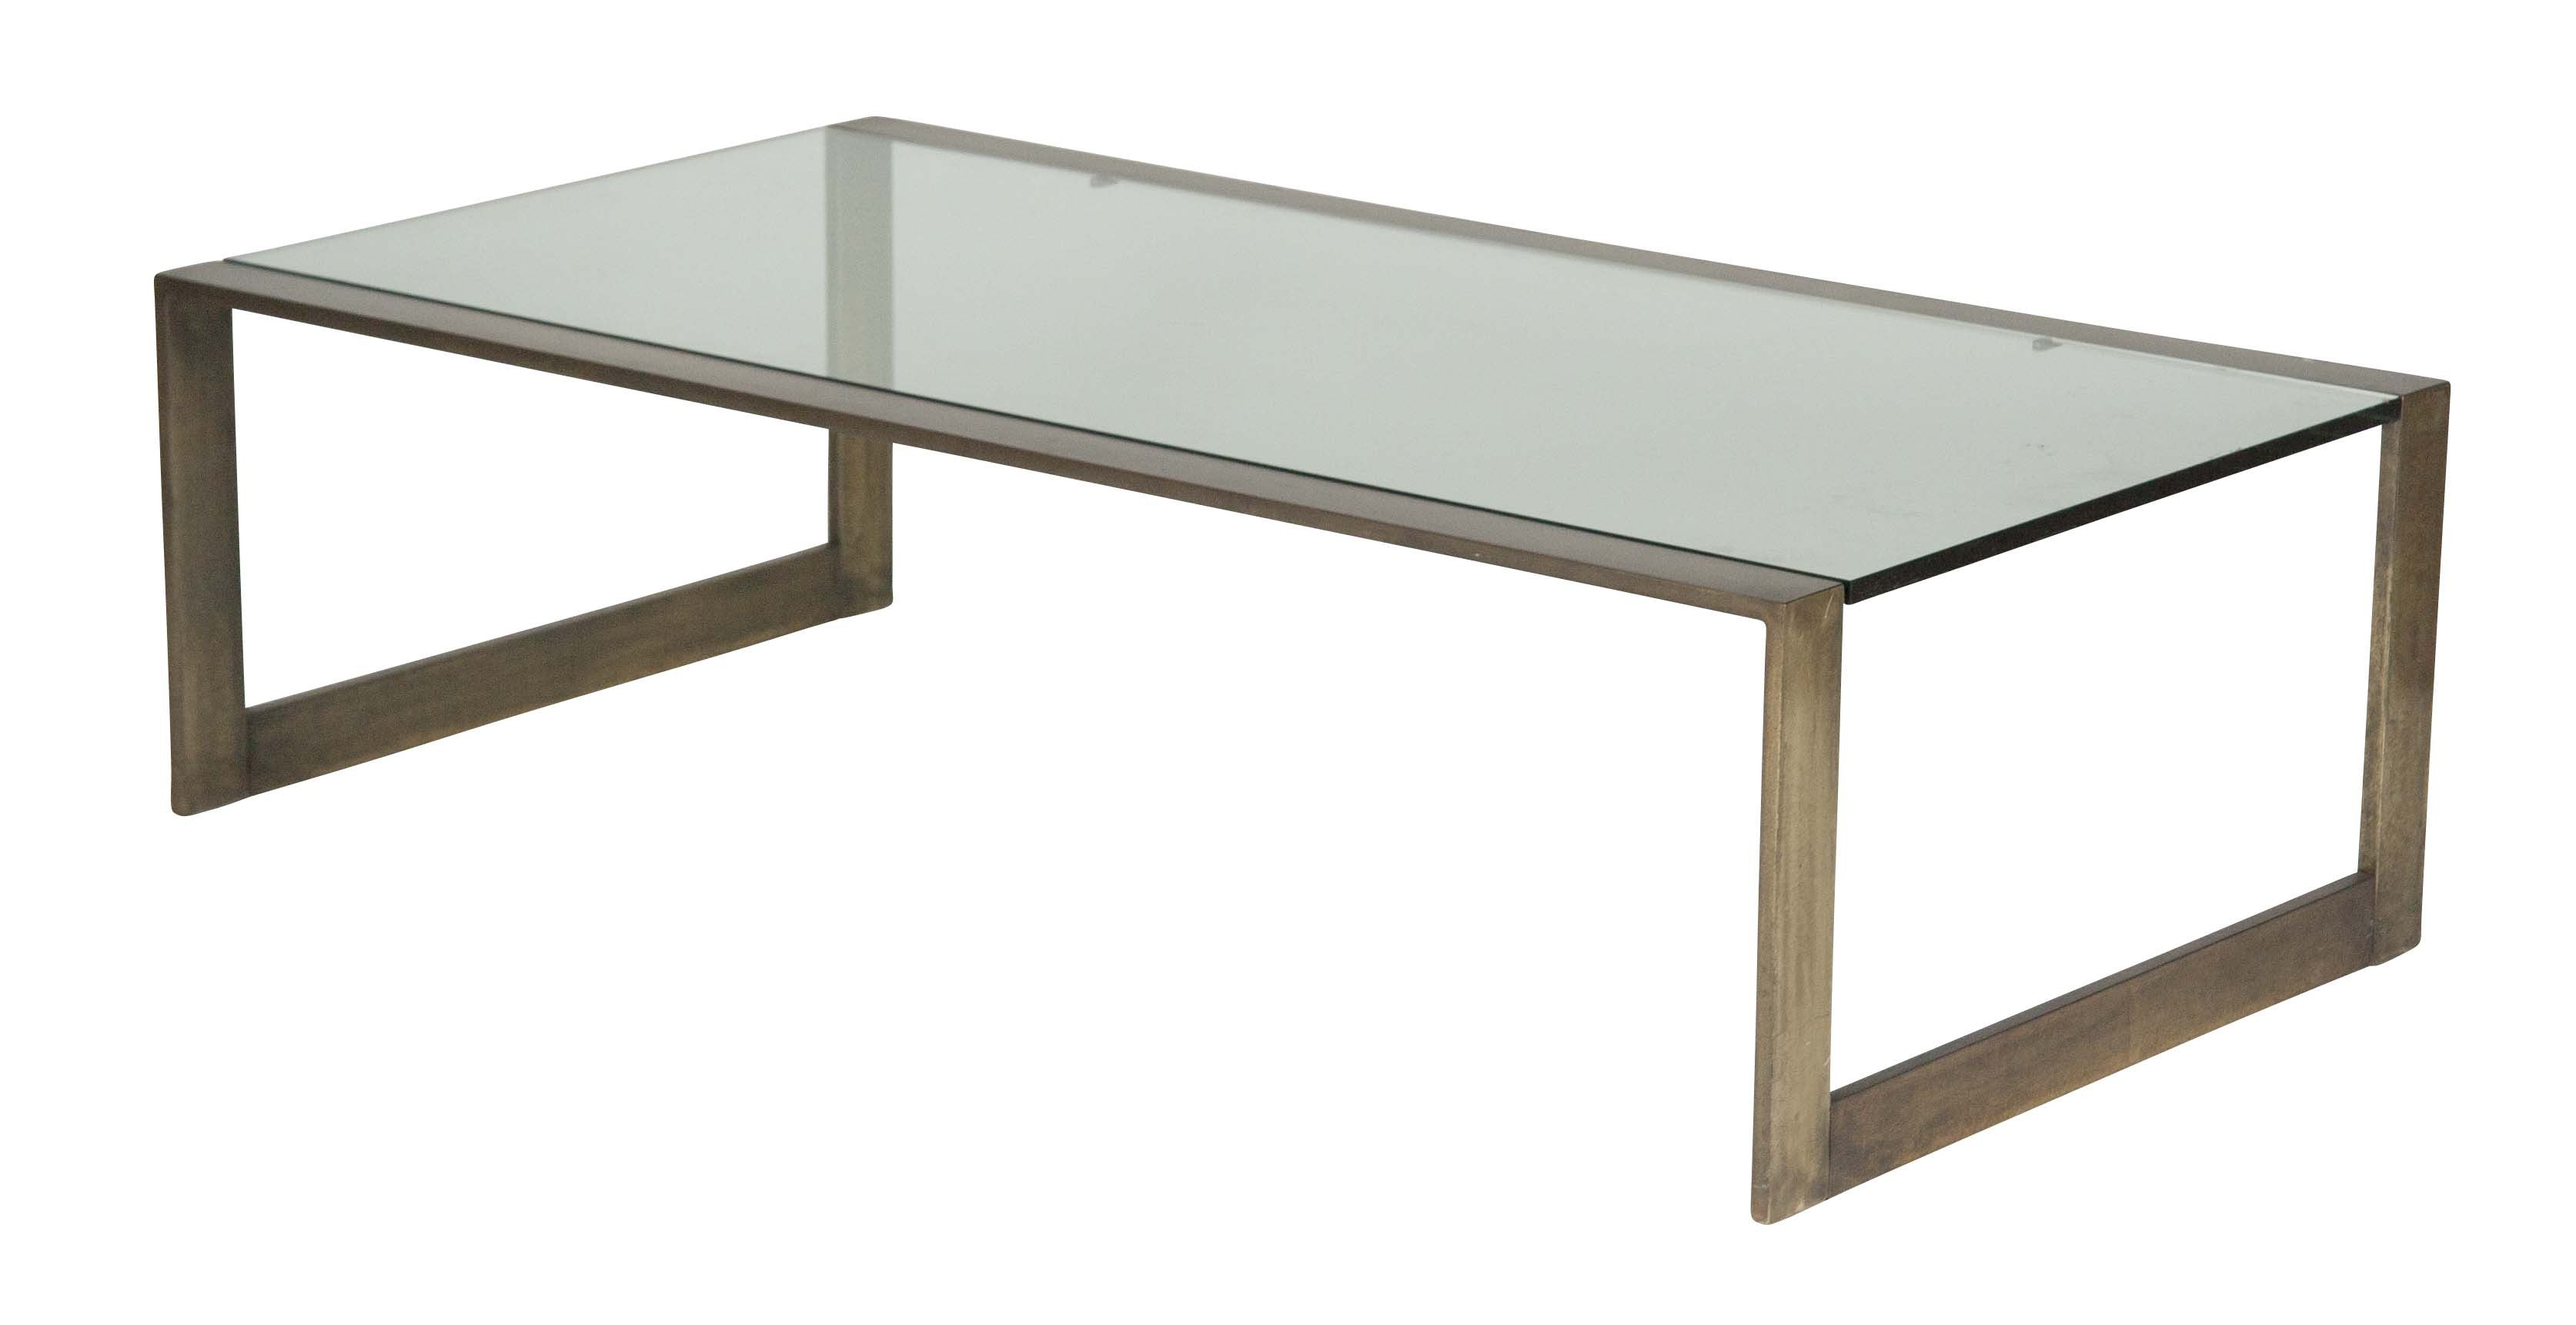 A glass top bronze coffee table produced by pace avery dash a glass top bronze coffee table produced by pace geotapseo Image collections